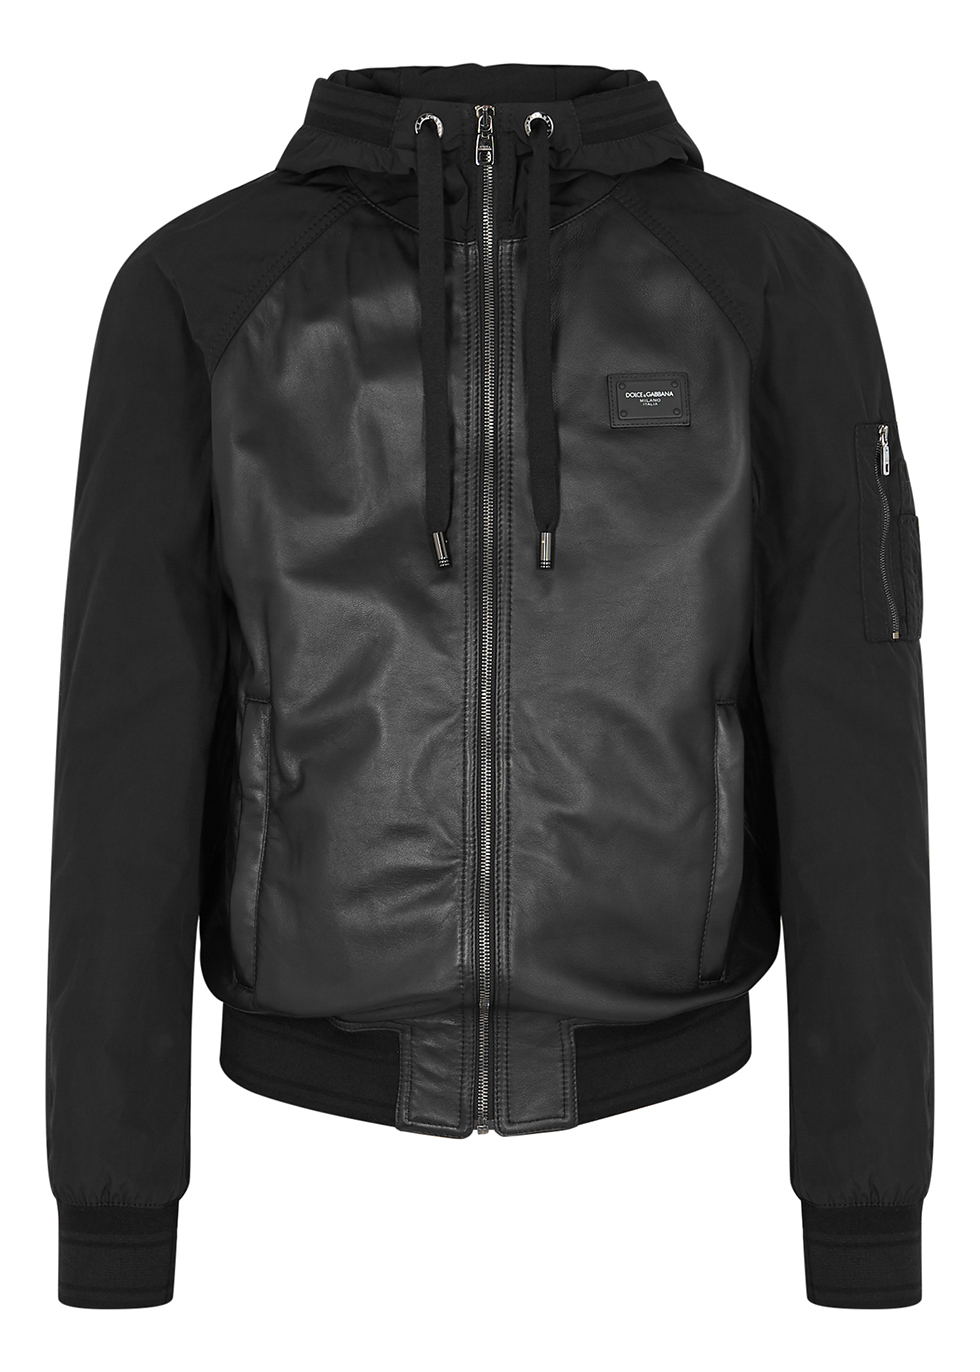 baa9a76bb Men's Designer Jackets - Winter Jackets for Men - Harvey Nichols